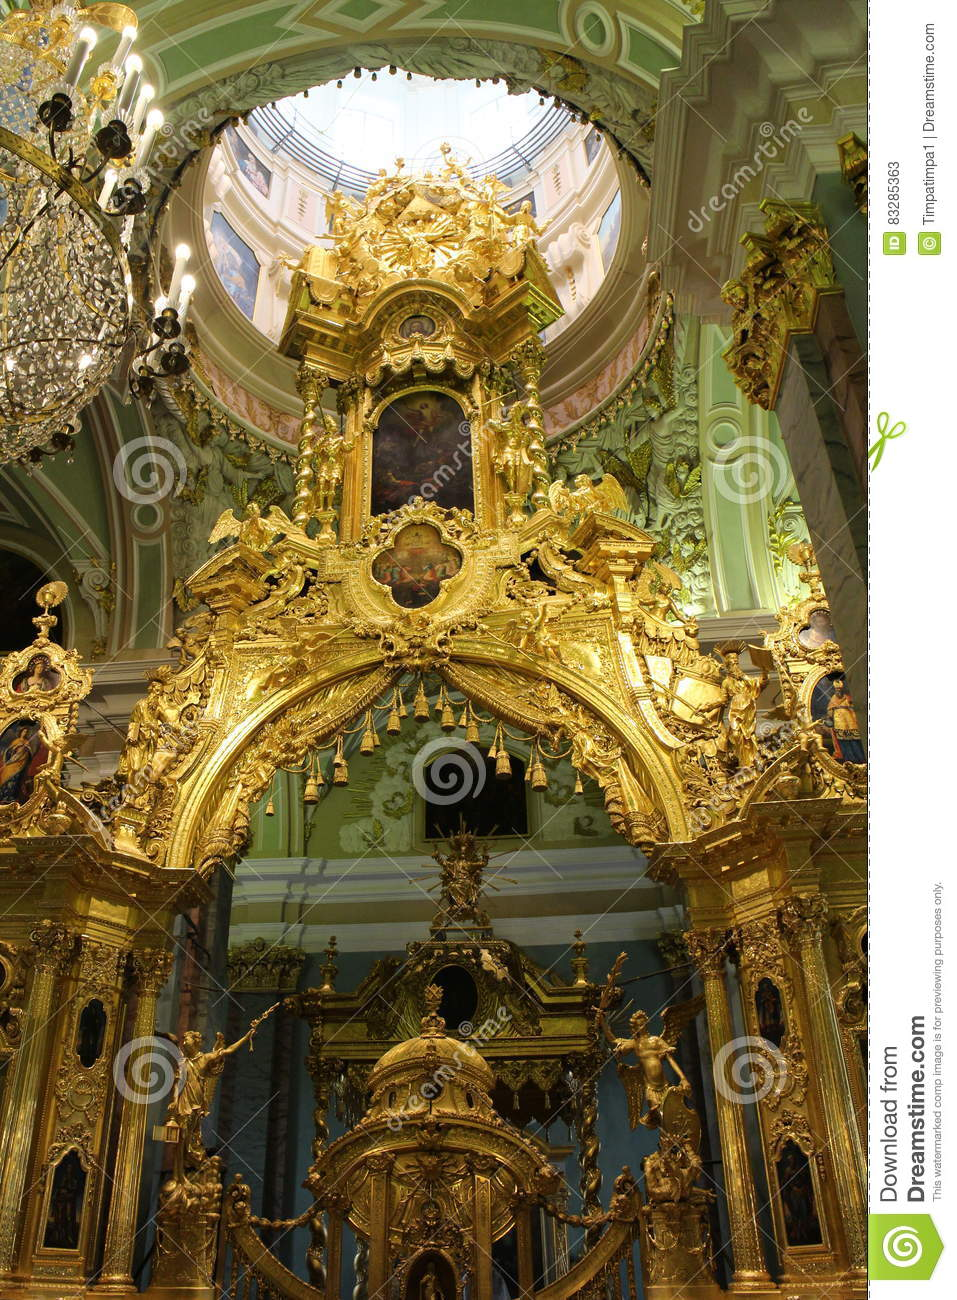 Download Peter And Paul Cathedral, Saint Petersburg Stock Image - Image of peter, museum: 83285363